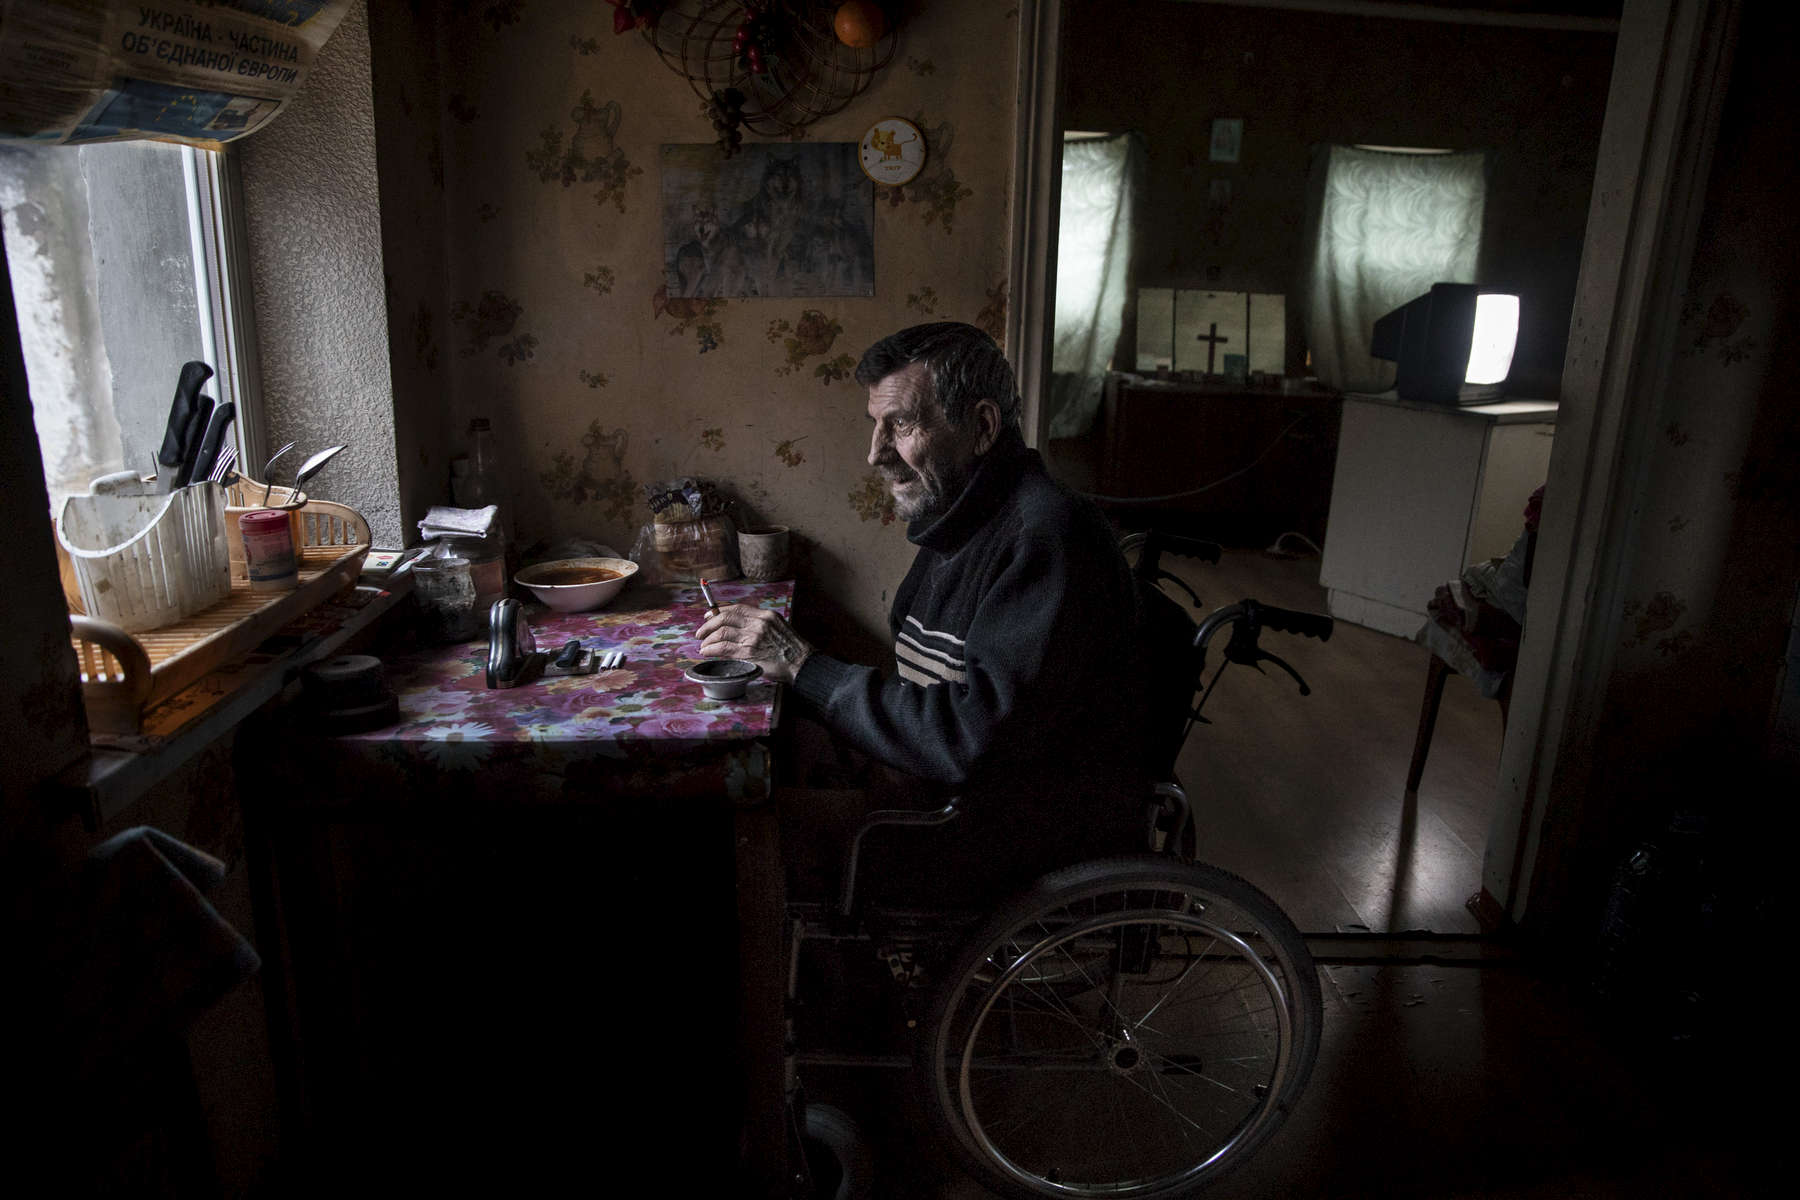 Avdiivka: Vladimir Mamoshyn, age 65, sits in his wheelchair, his wife died in 2010, now he lives alone, his children abandoned him. He resides in the war-torn  Avdiivka village, less than a kilometer from the contact line where daily shelling and gunfire can be heard. In 2016, Vladimir lost his leg due to a vascular disease, with poor access to health facilities along with inadequate health care. After having a heart attack a few months later in 2017 he lost the use of his left hand, now he lives in a wheelchair depending on family and  friends to help him.